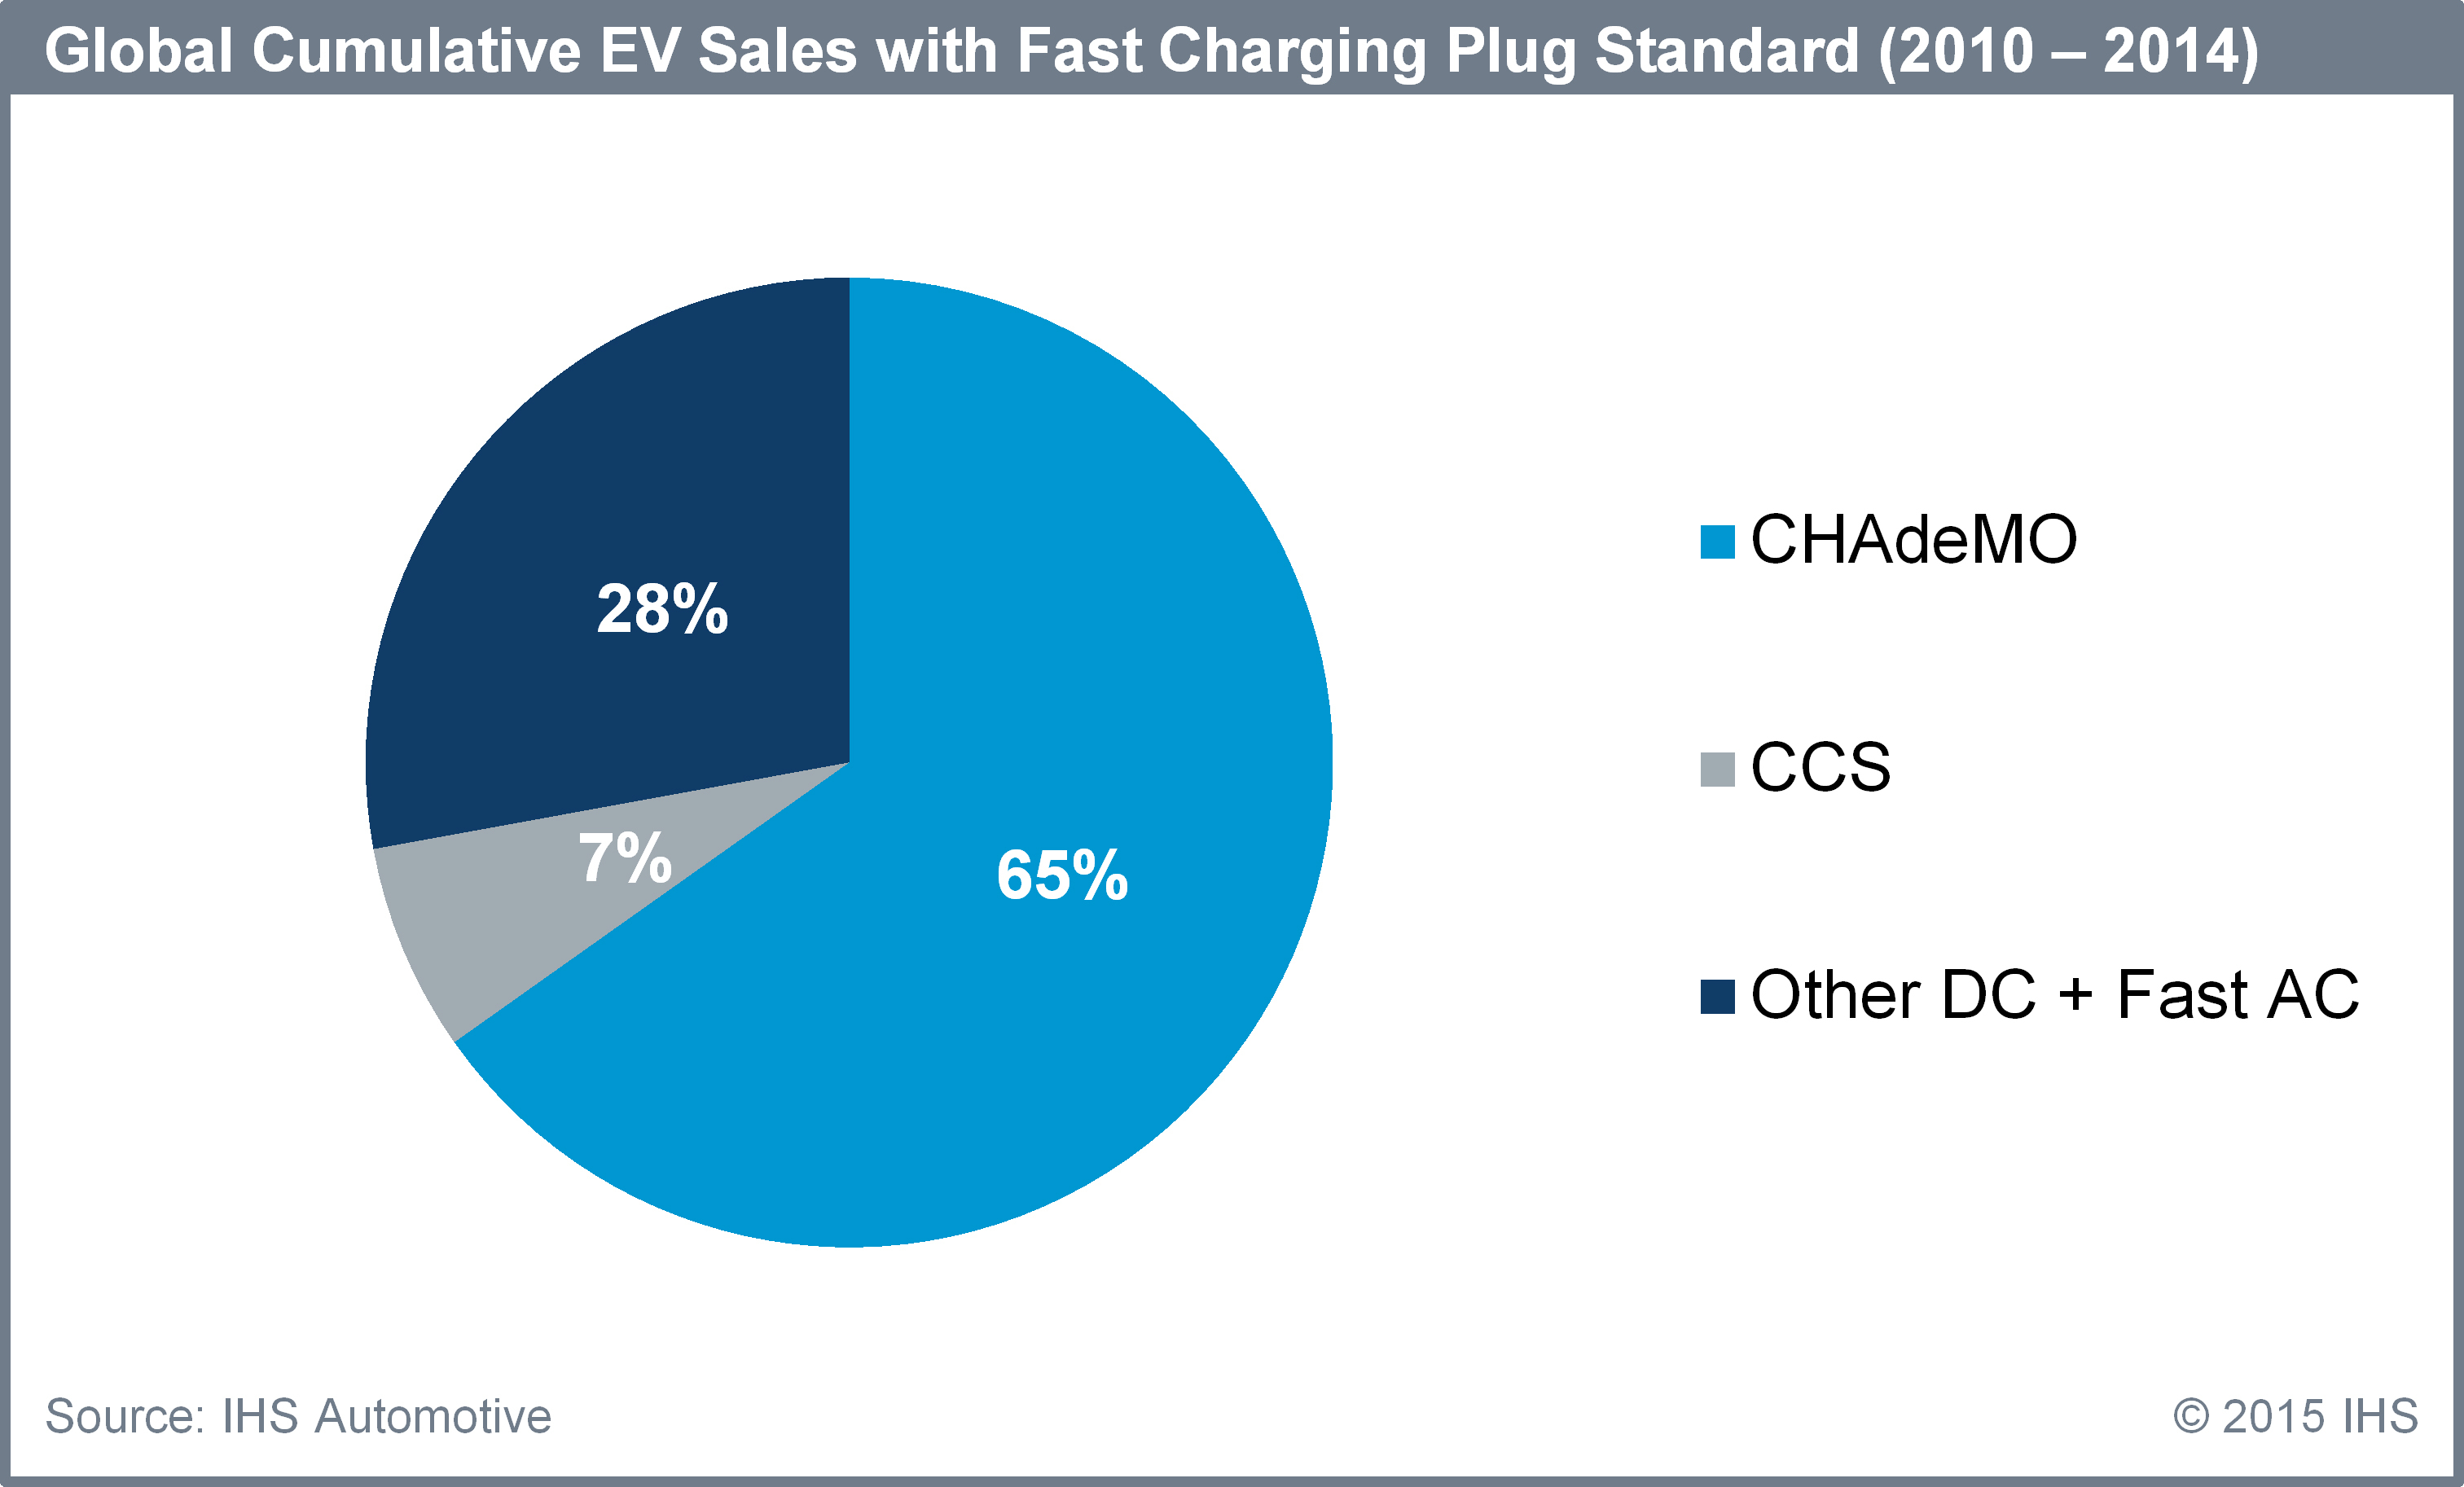 Wiring Diagram Electrical Car Charging Stations 47 Automotive Standards Ev Sales With Fast Plug Standard 2010 2014 Global To Skyrocket By 2020 Ihs Report Says Circuit